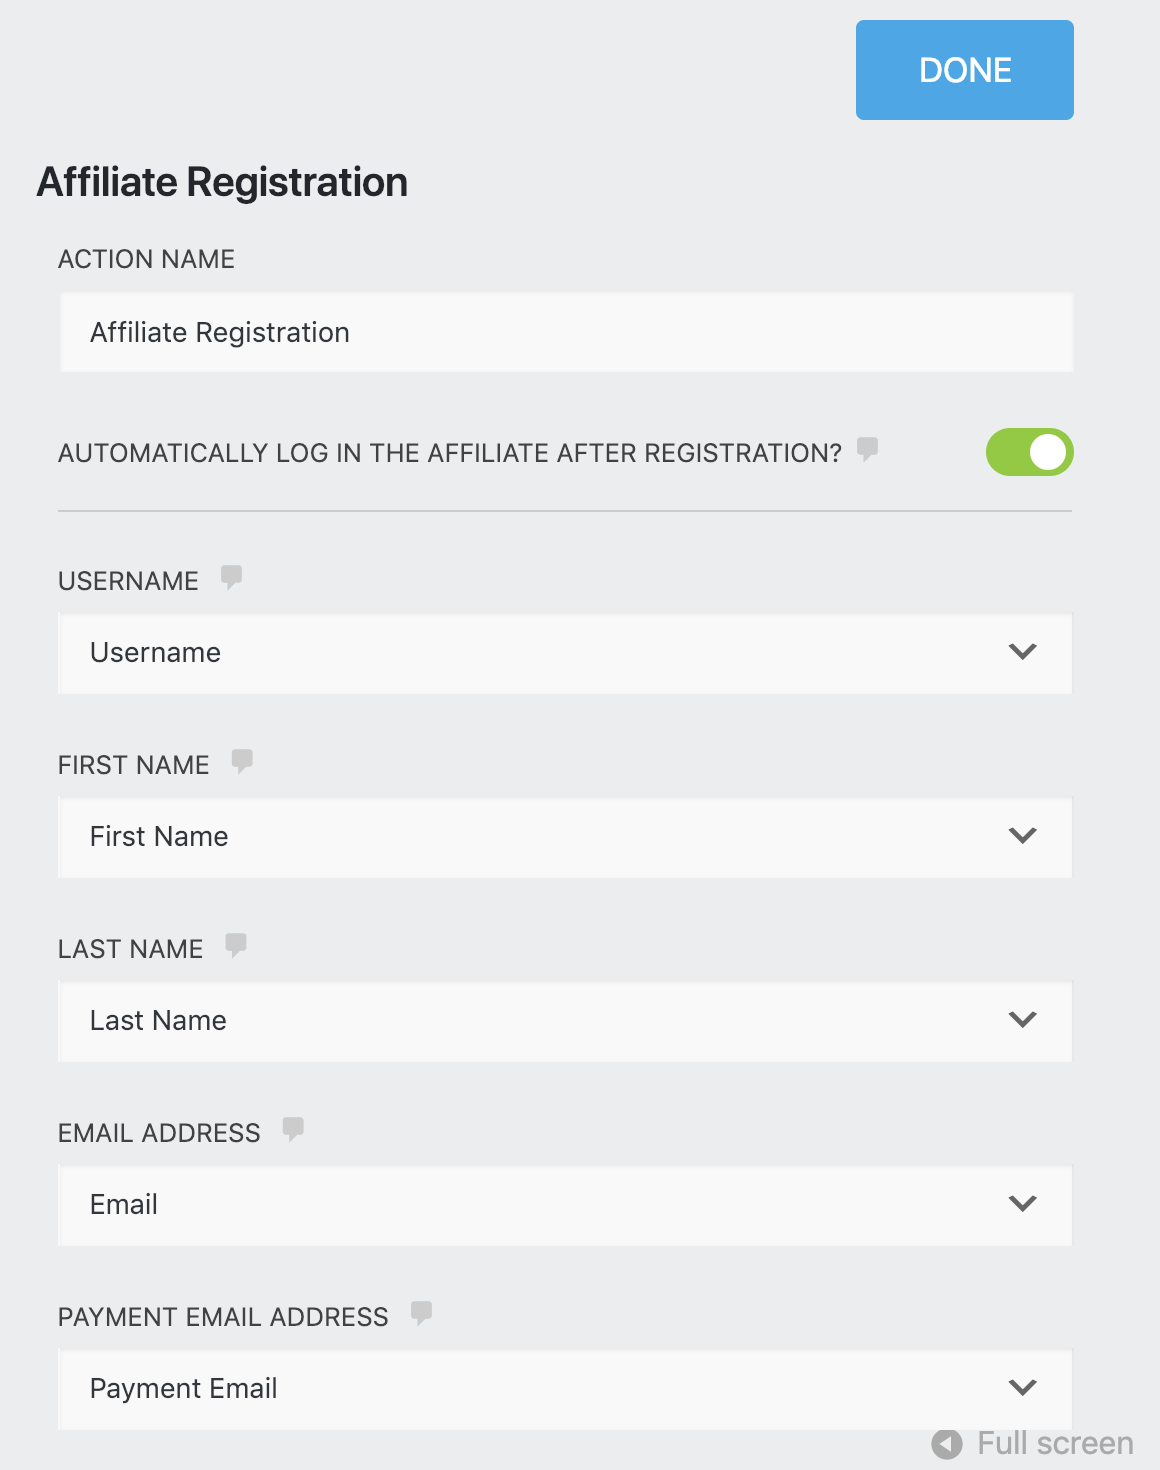 Affiliate Registration field list for mapping